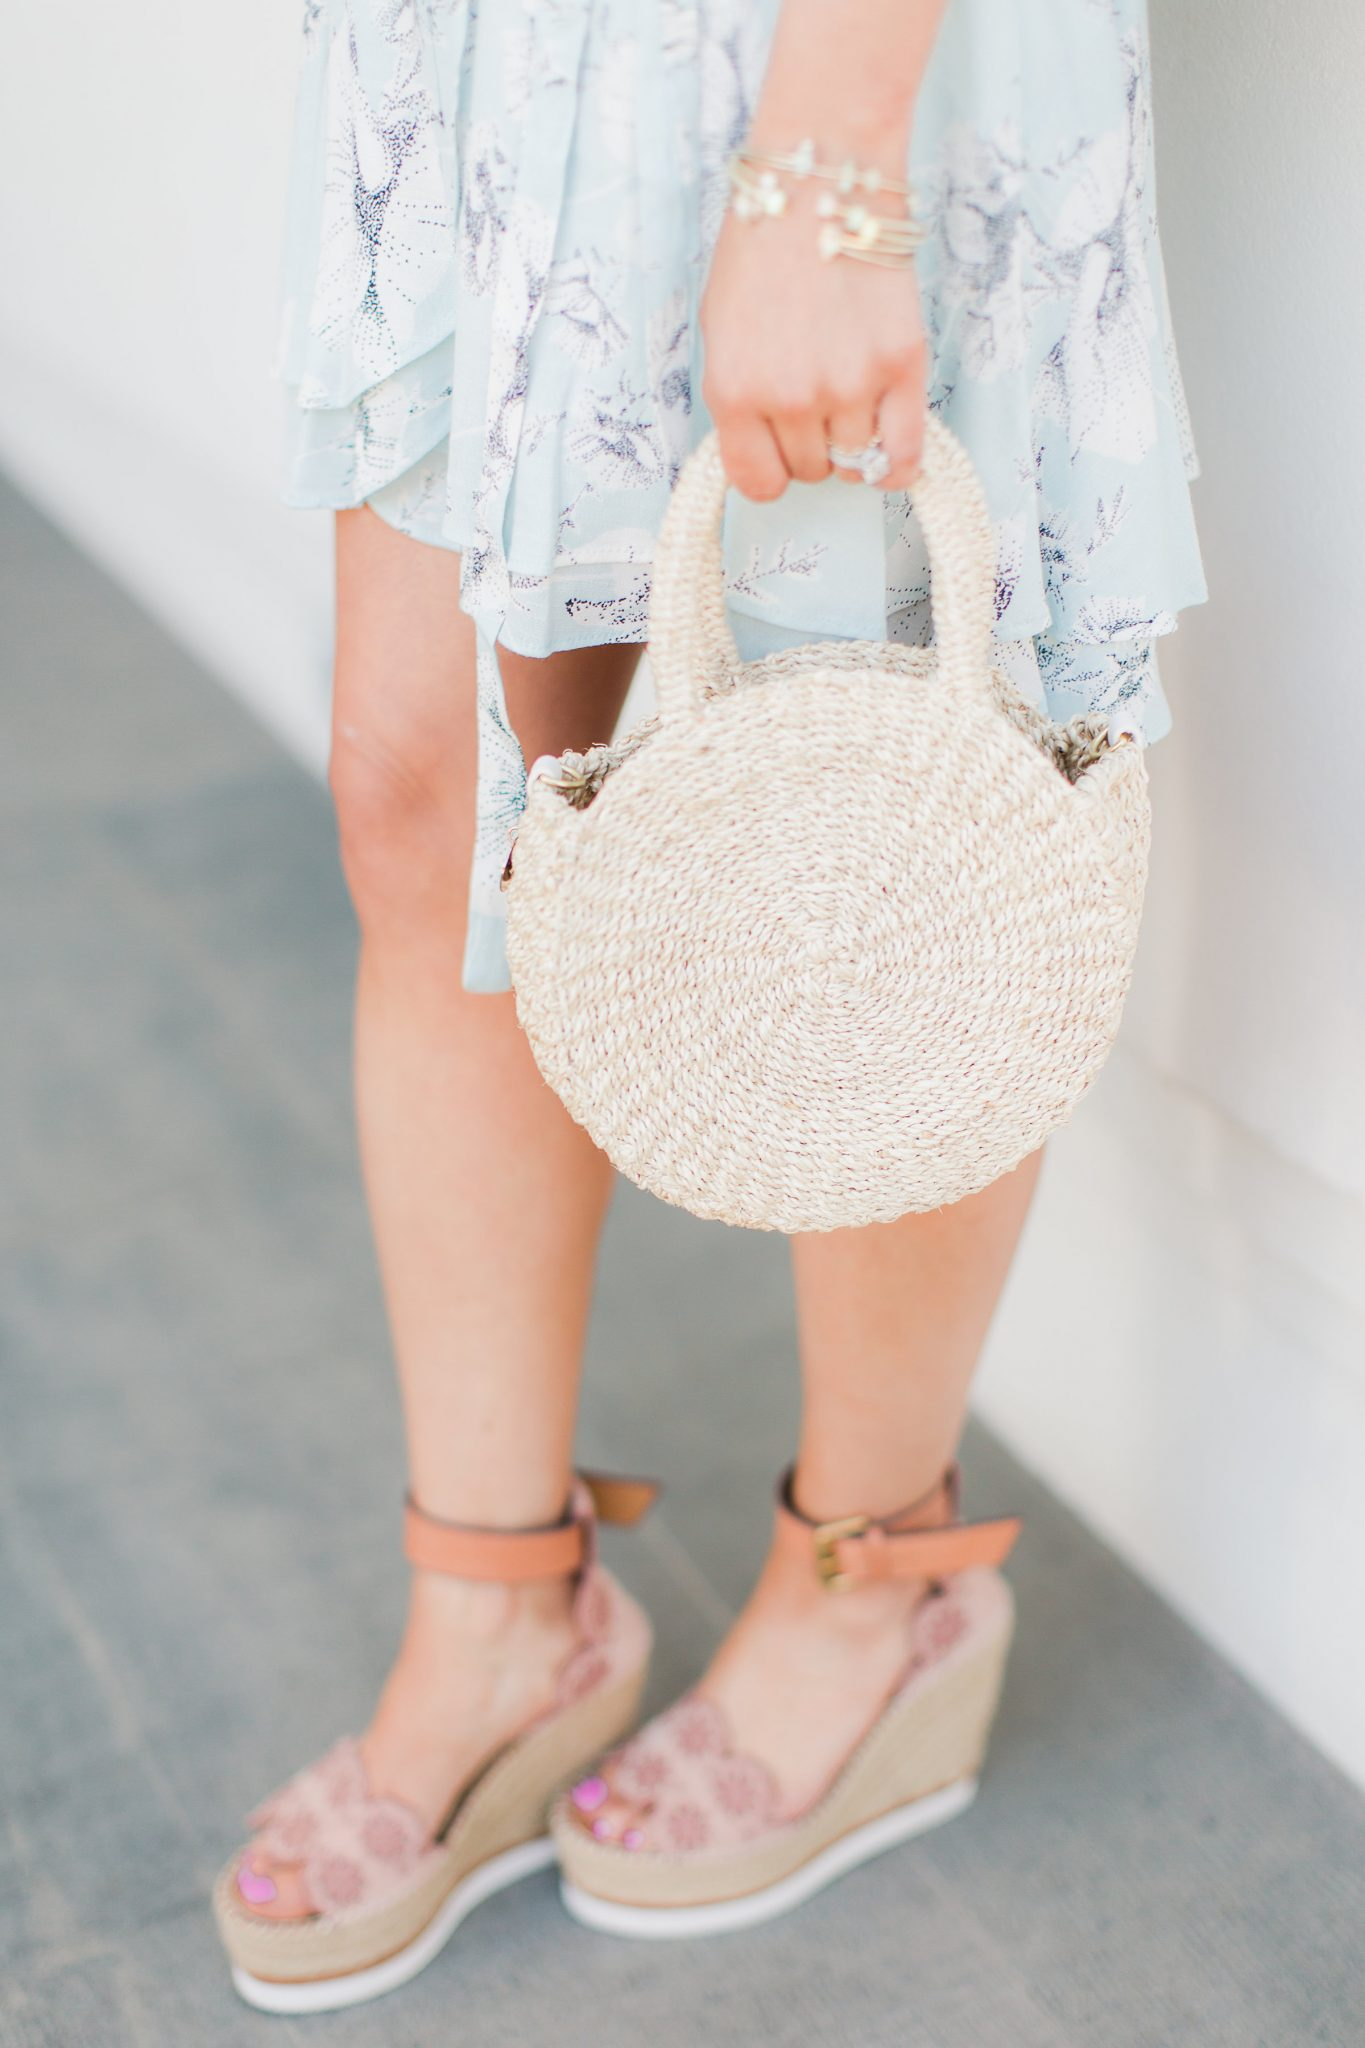 Round straw bag and espadrille wedges - My Favorite Cute Easter Dresses by popular Orange County fashion blogger Maxie Elise